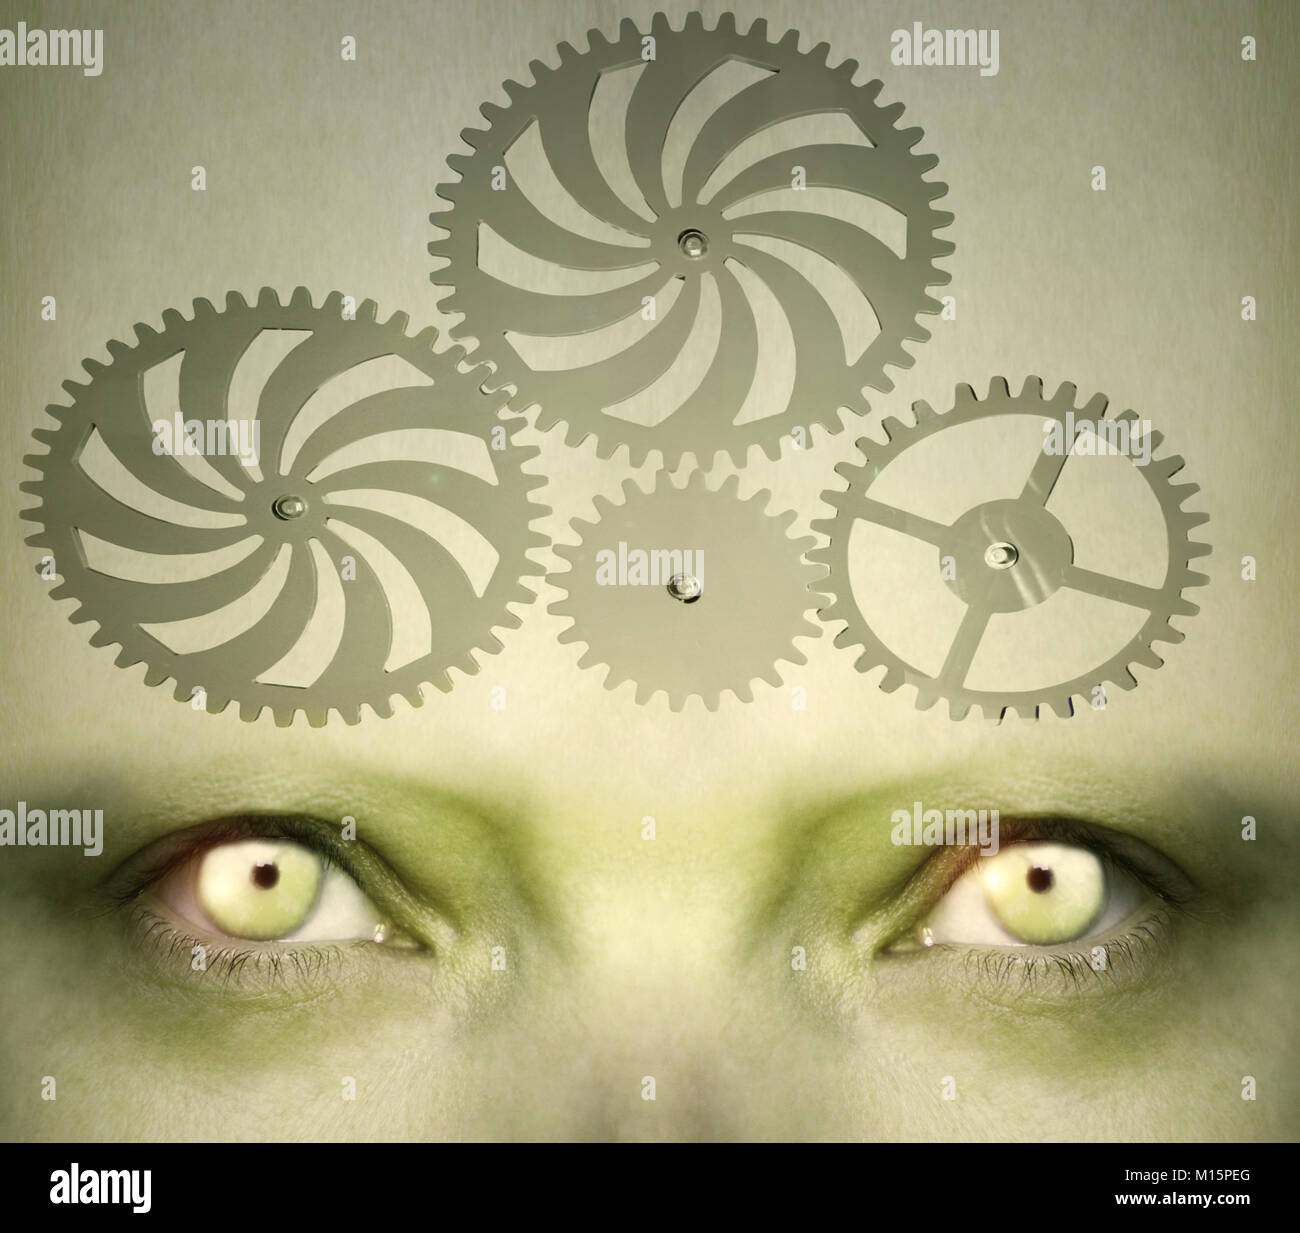 Human eyes with gearing on the forehead representing an abstract concept of the complexity of the human mind - Stock Image